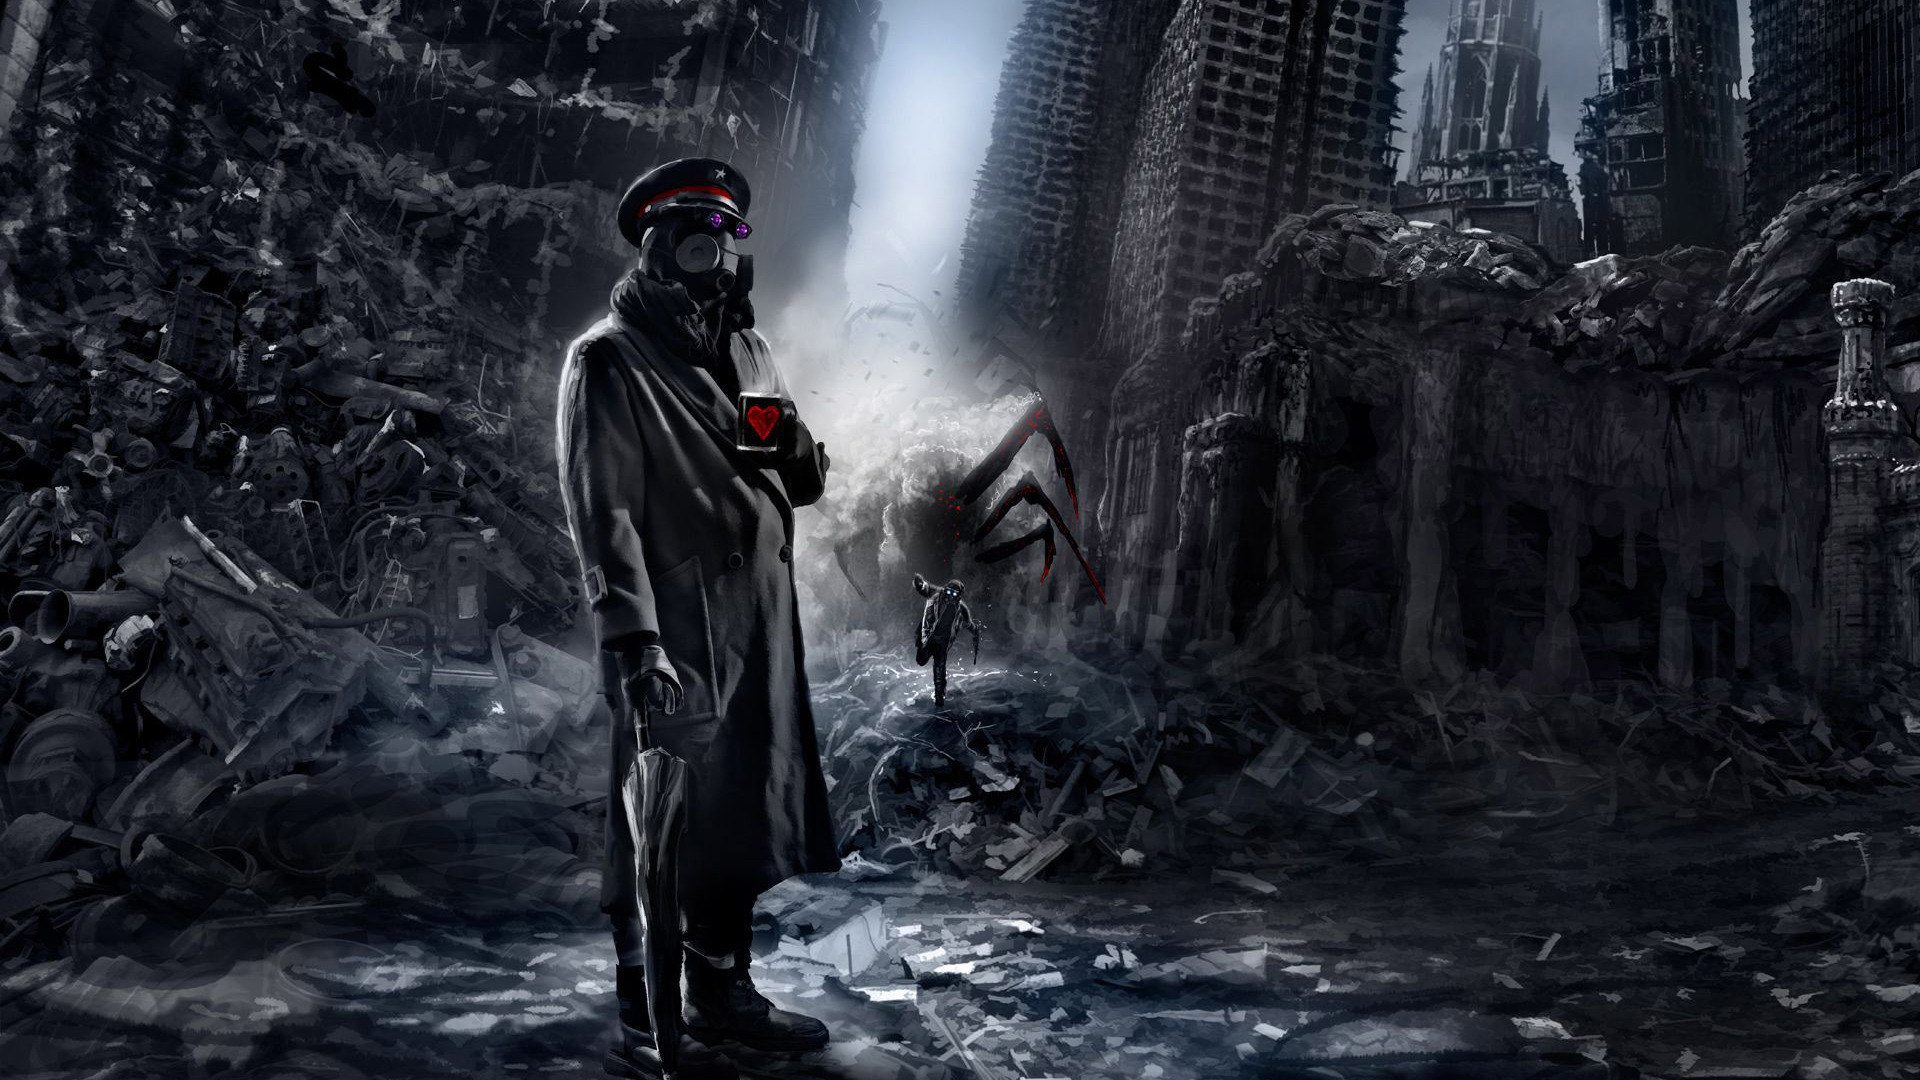 Romantically Apocalyptic Wallpaper 7987 1920x1080